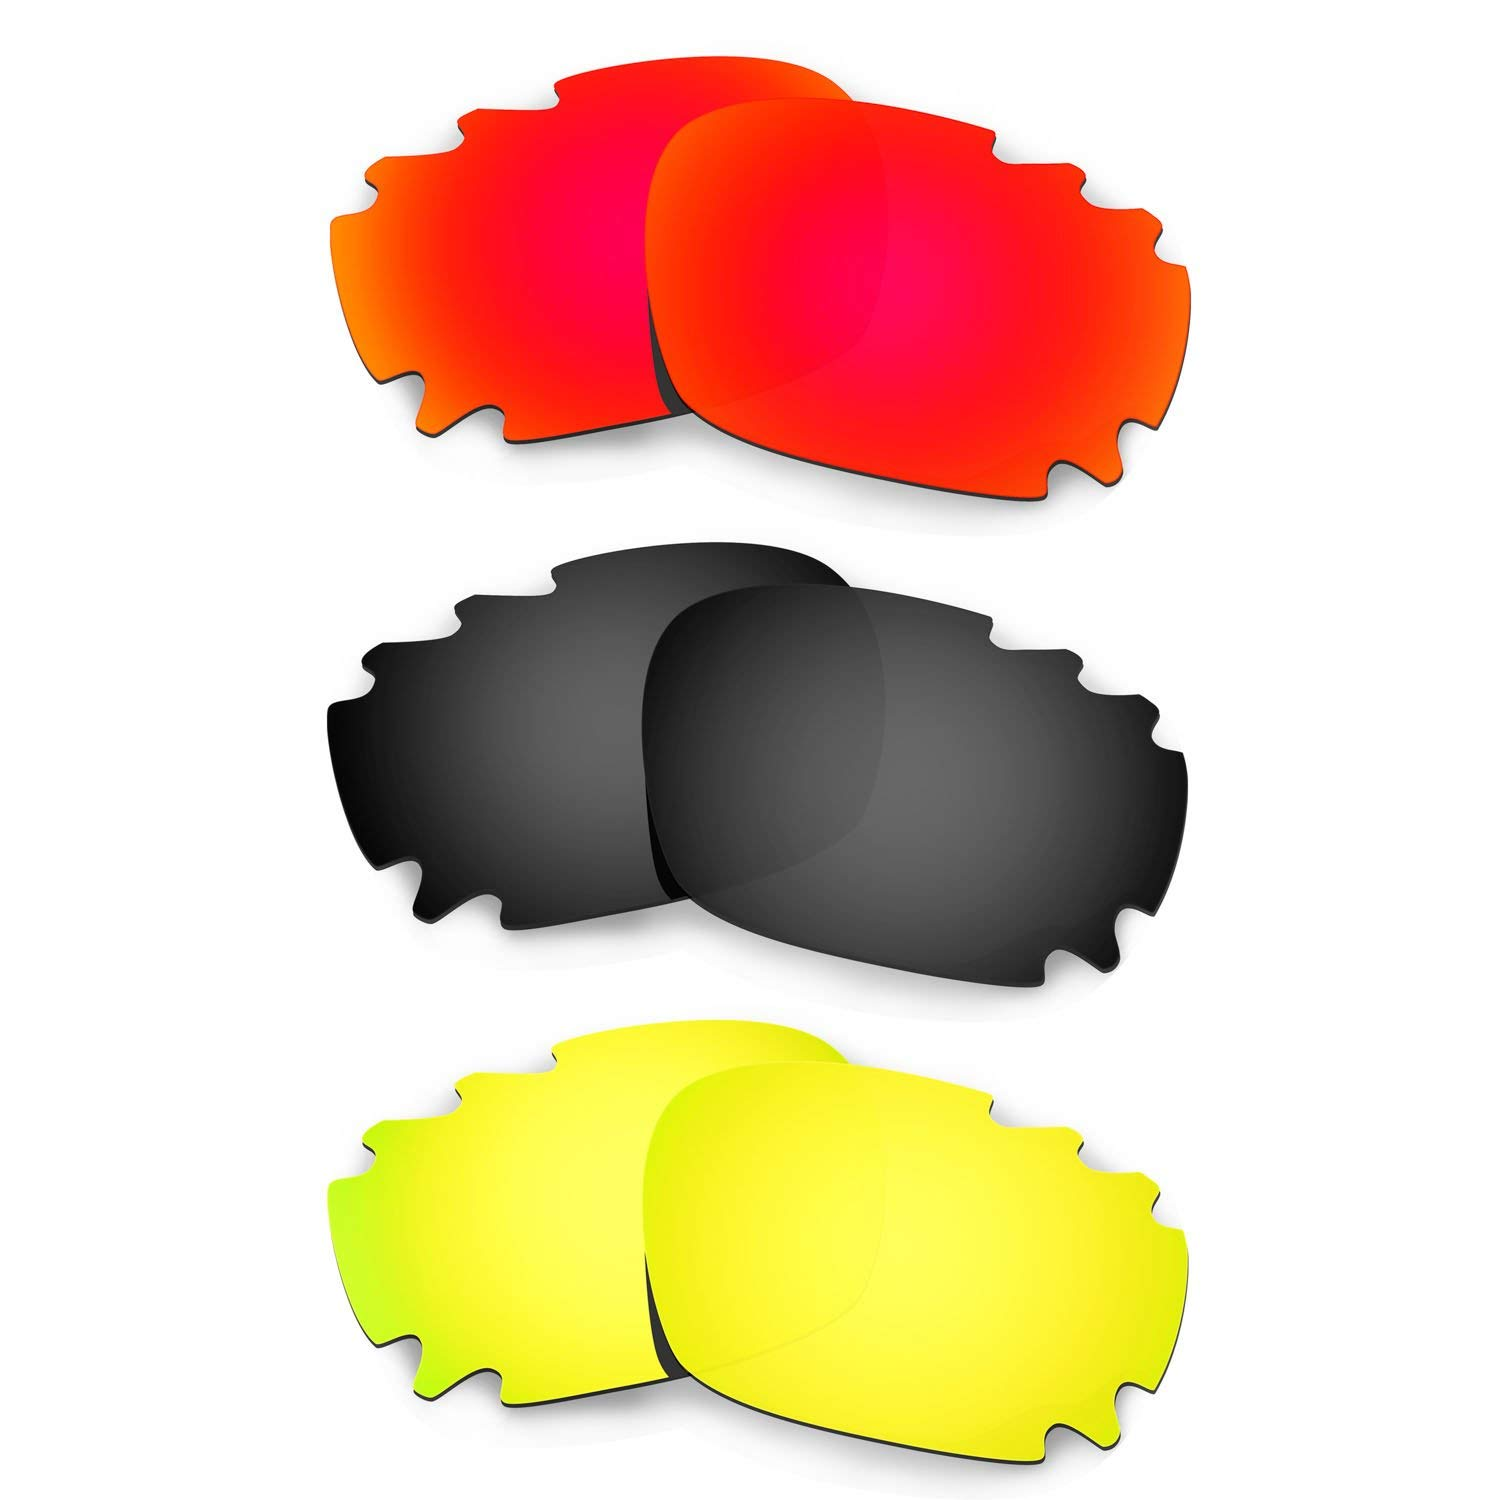 ad8f8b3e08bfd Get Quotations · Hkuco Plus Replacement Lenses For Oakley Jawbone Vented -  3 pair Combo Pack